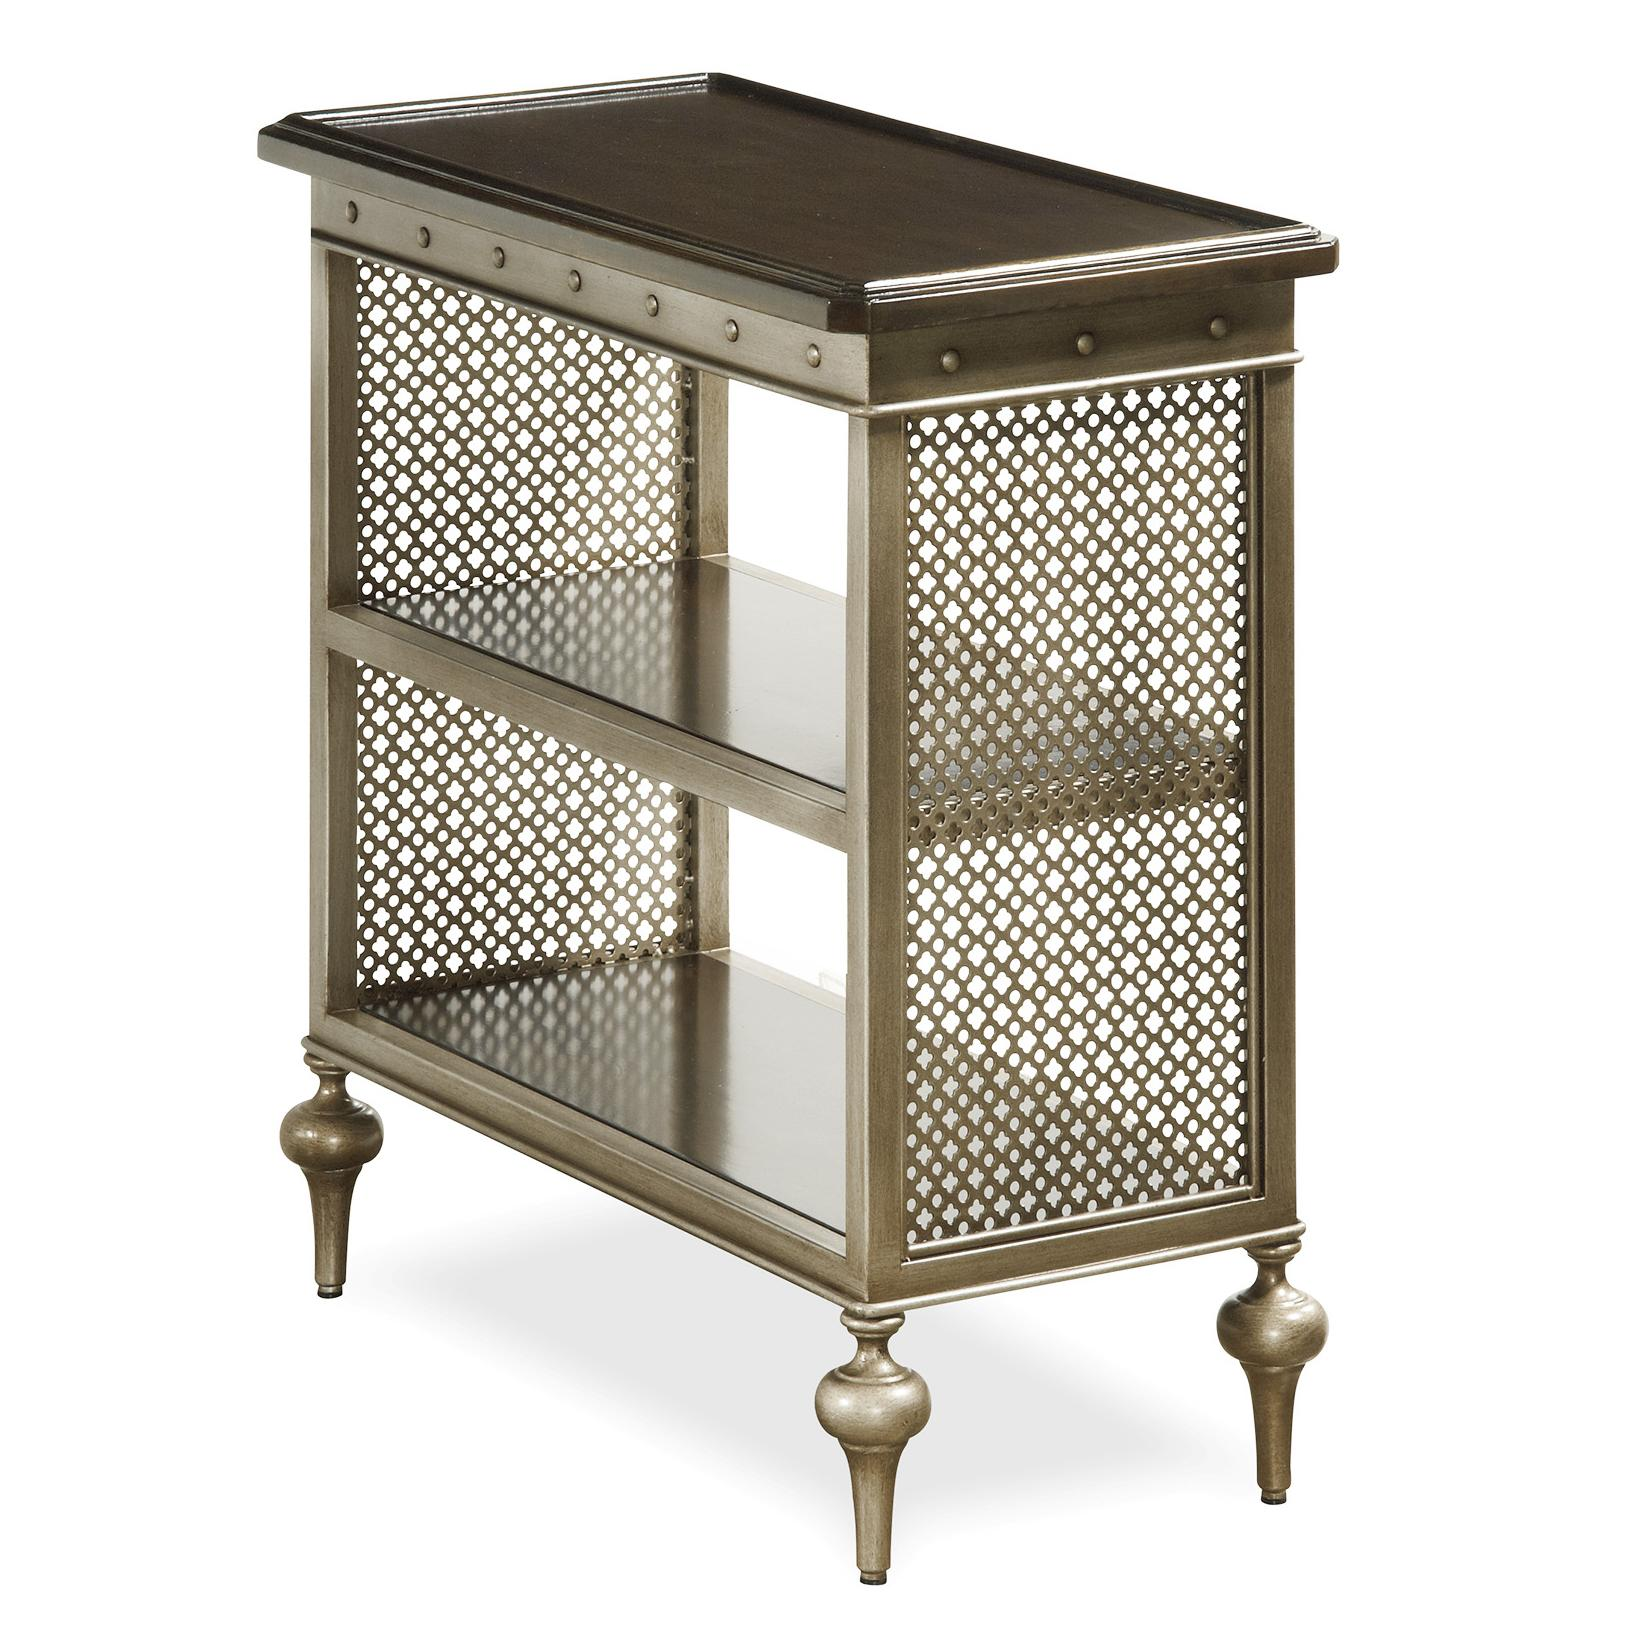 Universal proximity 356817 chair side table with metal mesh sides hudson 39 s furniture end tables - Essential accent furniture for your home ...